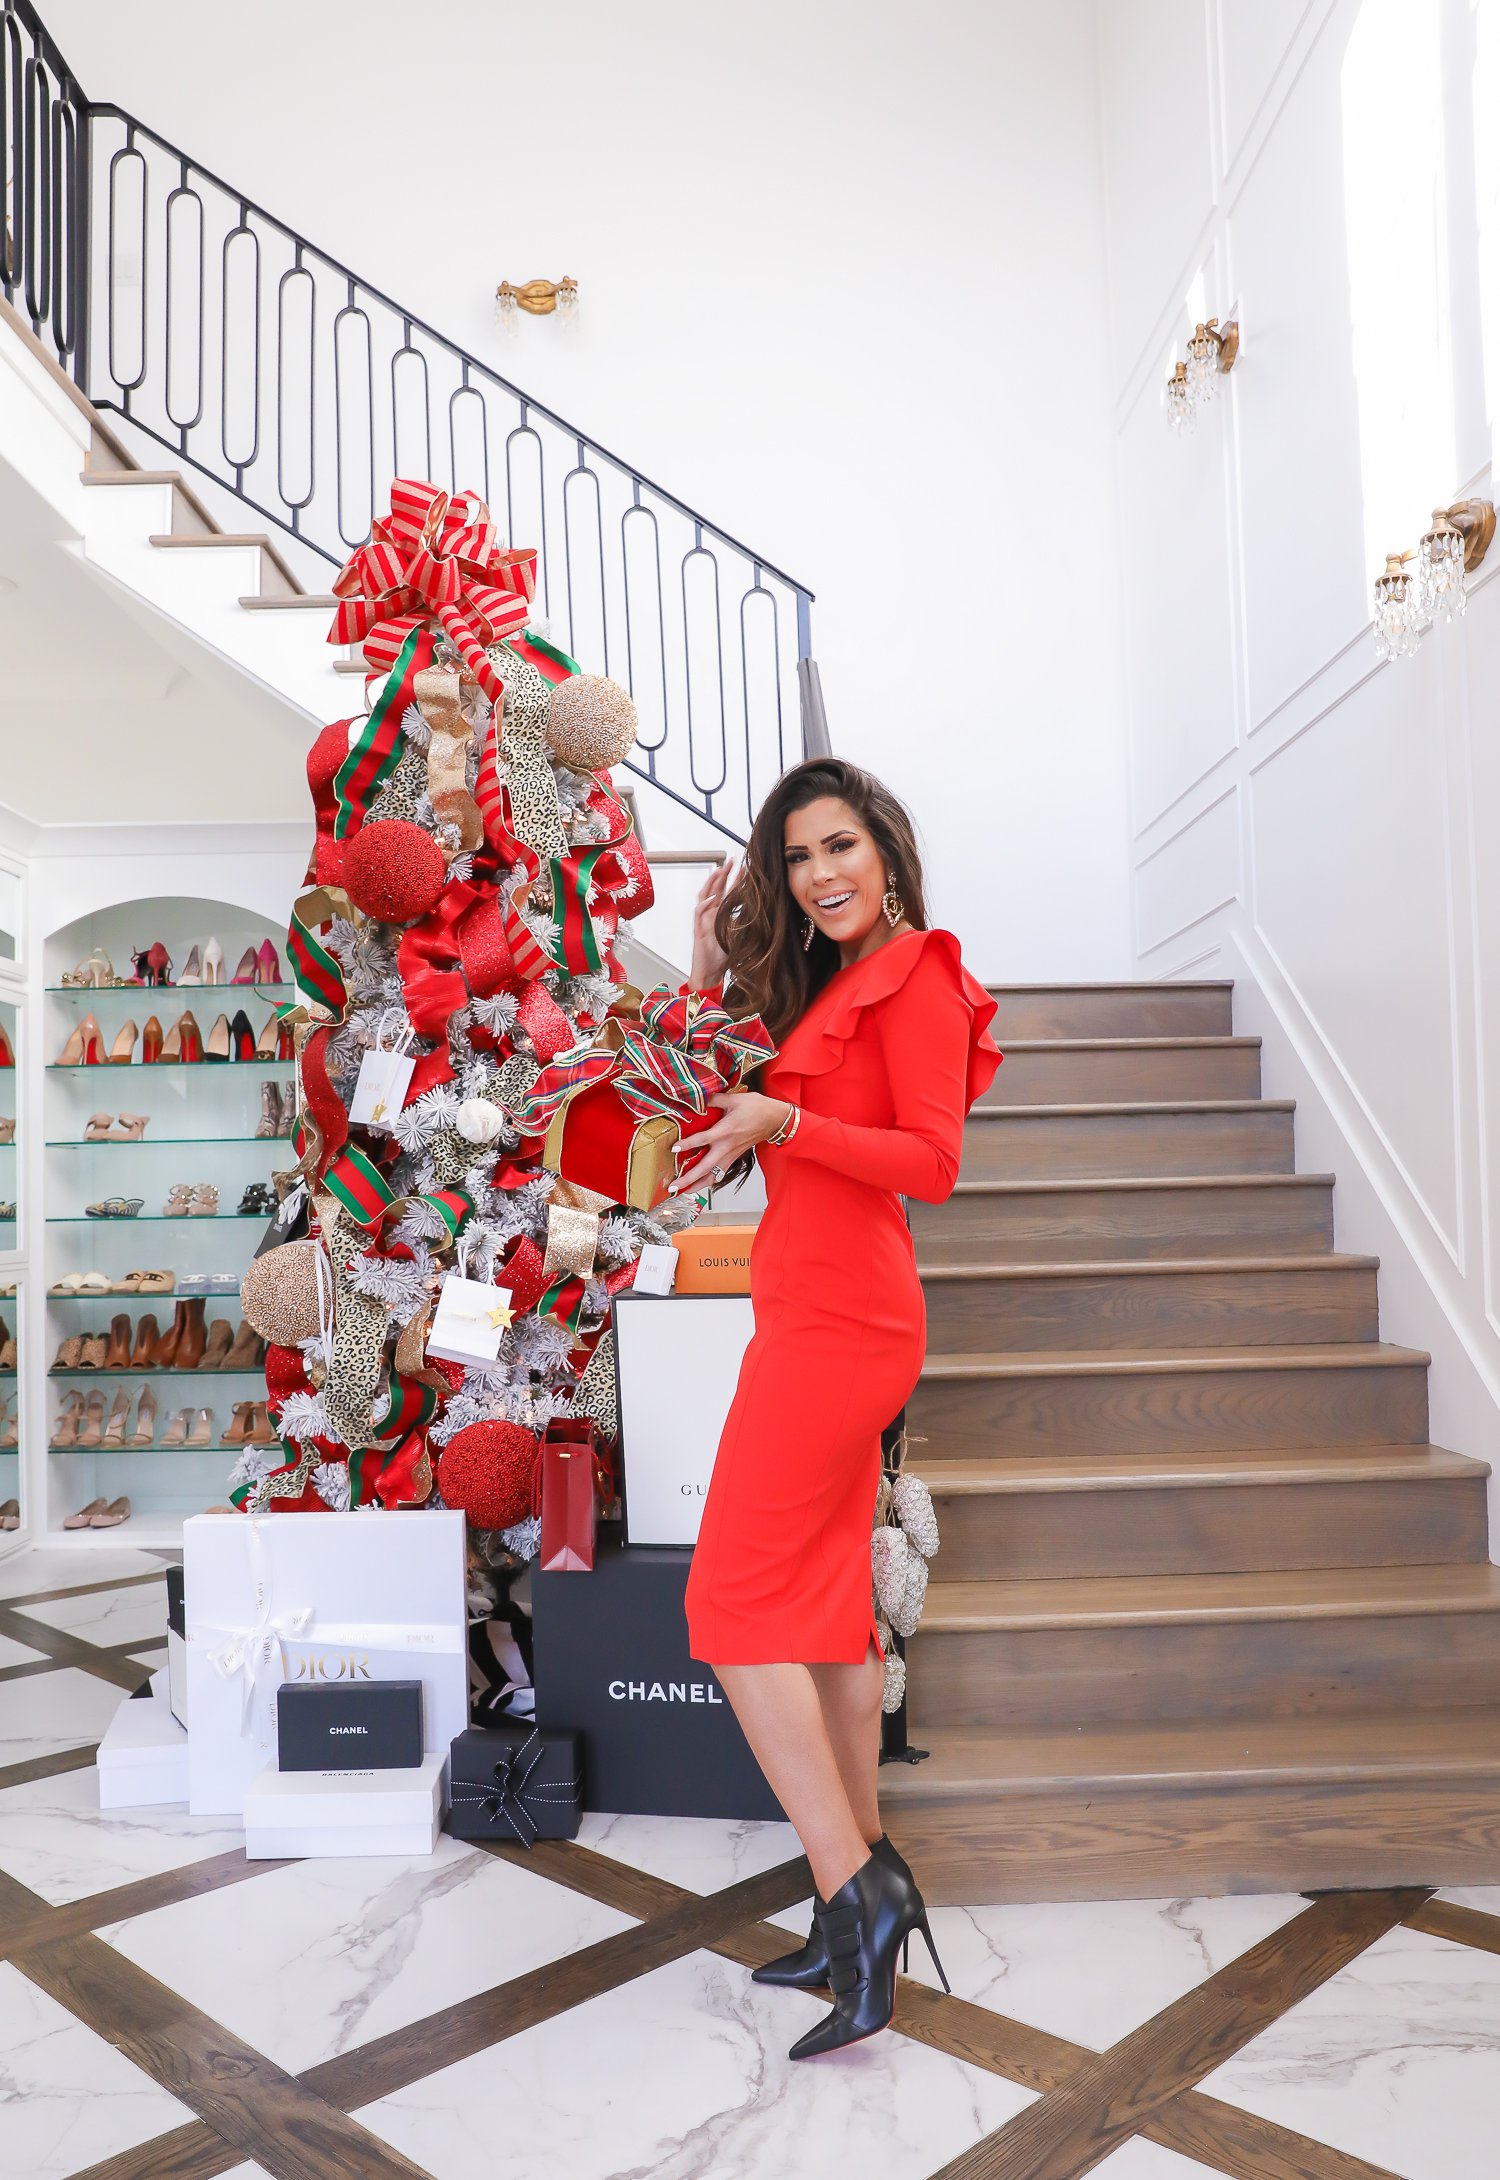 christmas tree inspiration, two story closet, designer christmas tree, giorgio armani review, emily gemma, pinterest christmas decor 2019-2 | The Perfect Rachel Parcell Dress & A New Makeup Review by popular Oklahoma fashion blog, The Sweetest Thing: image of a woman standing on a staircase next to Christmas tree and wearing a Nordstrom Rachel Parcell Ruffle Long Sleeve Ponte Dress, Nordstrom Christian LouBoutin Triniboot Stiletto Bootie, Nordstrom Charlotte Tilbury Lip Cheat Lip Liner, Nordstrom Charlotte Tilbury Hot Lips Lipstick, and Nordstrom Tom Ford Gloss Luxe Moisturizing Lipgloss.